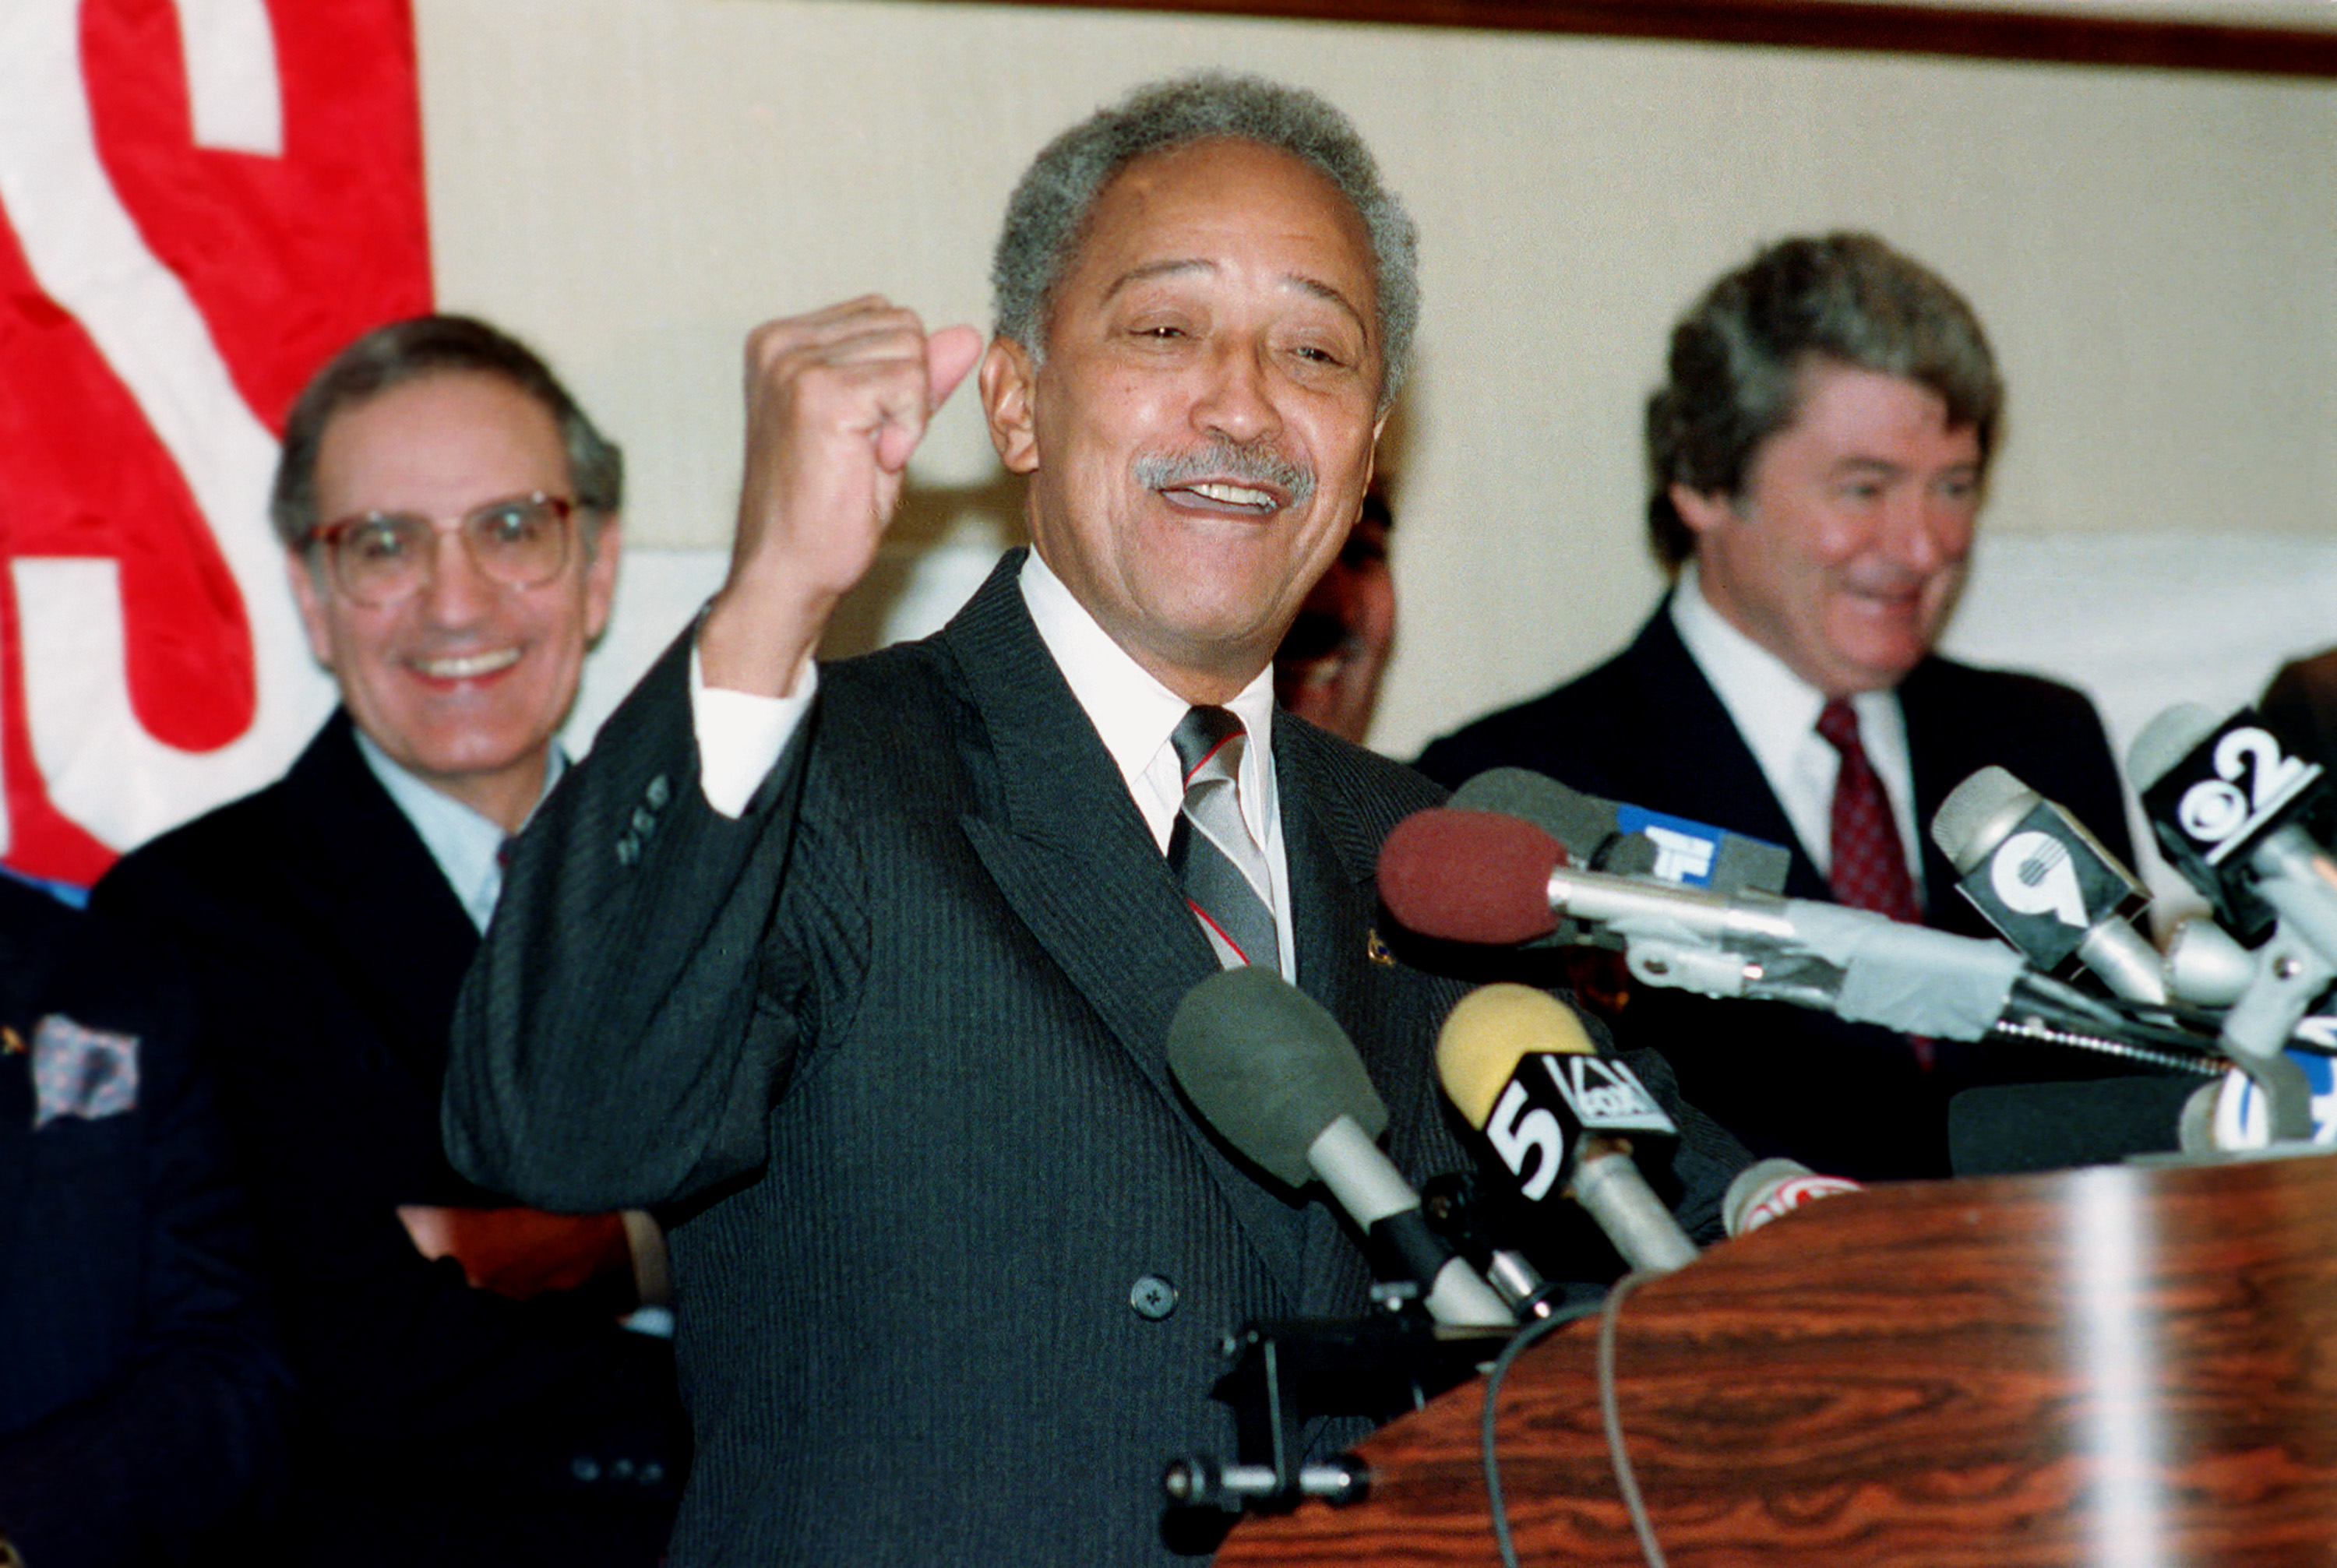 zlcpyuxd1oj93m https www ny1 com nyc all boroughs politics 2020 11 24 sources former mayor david dinkins dies at 93